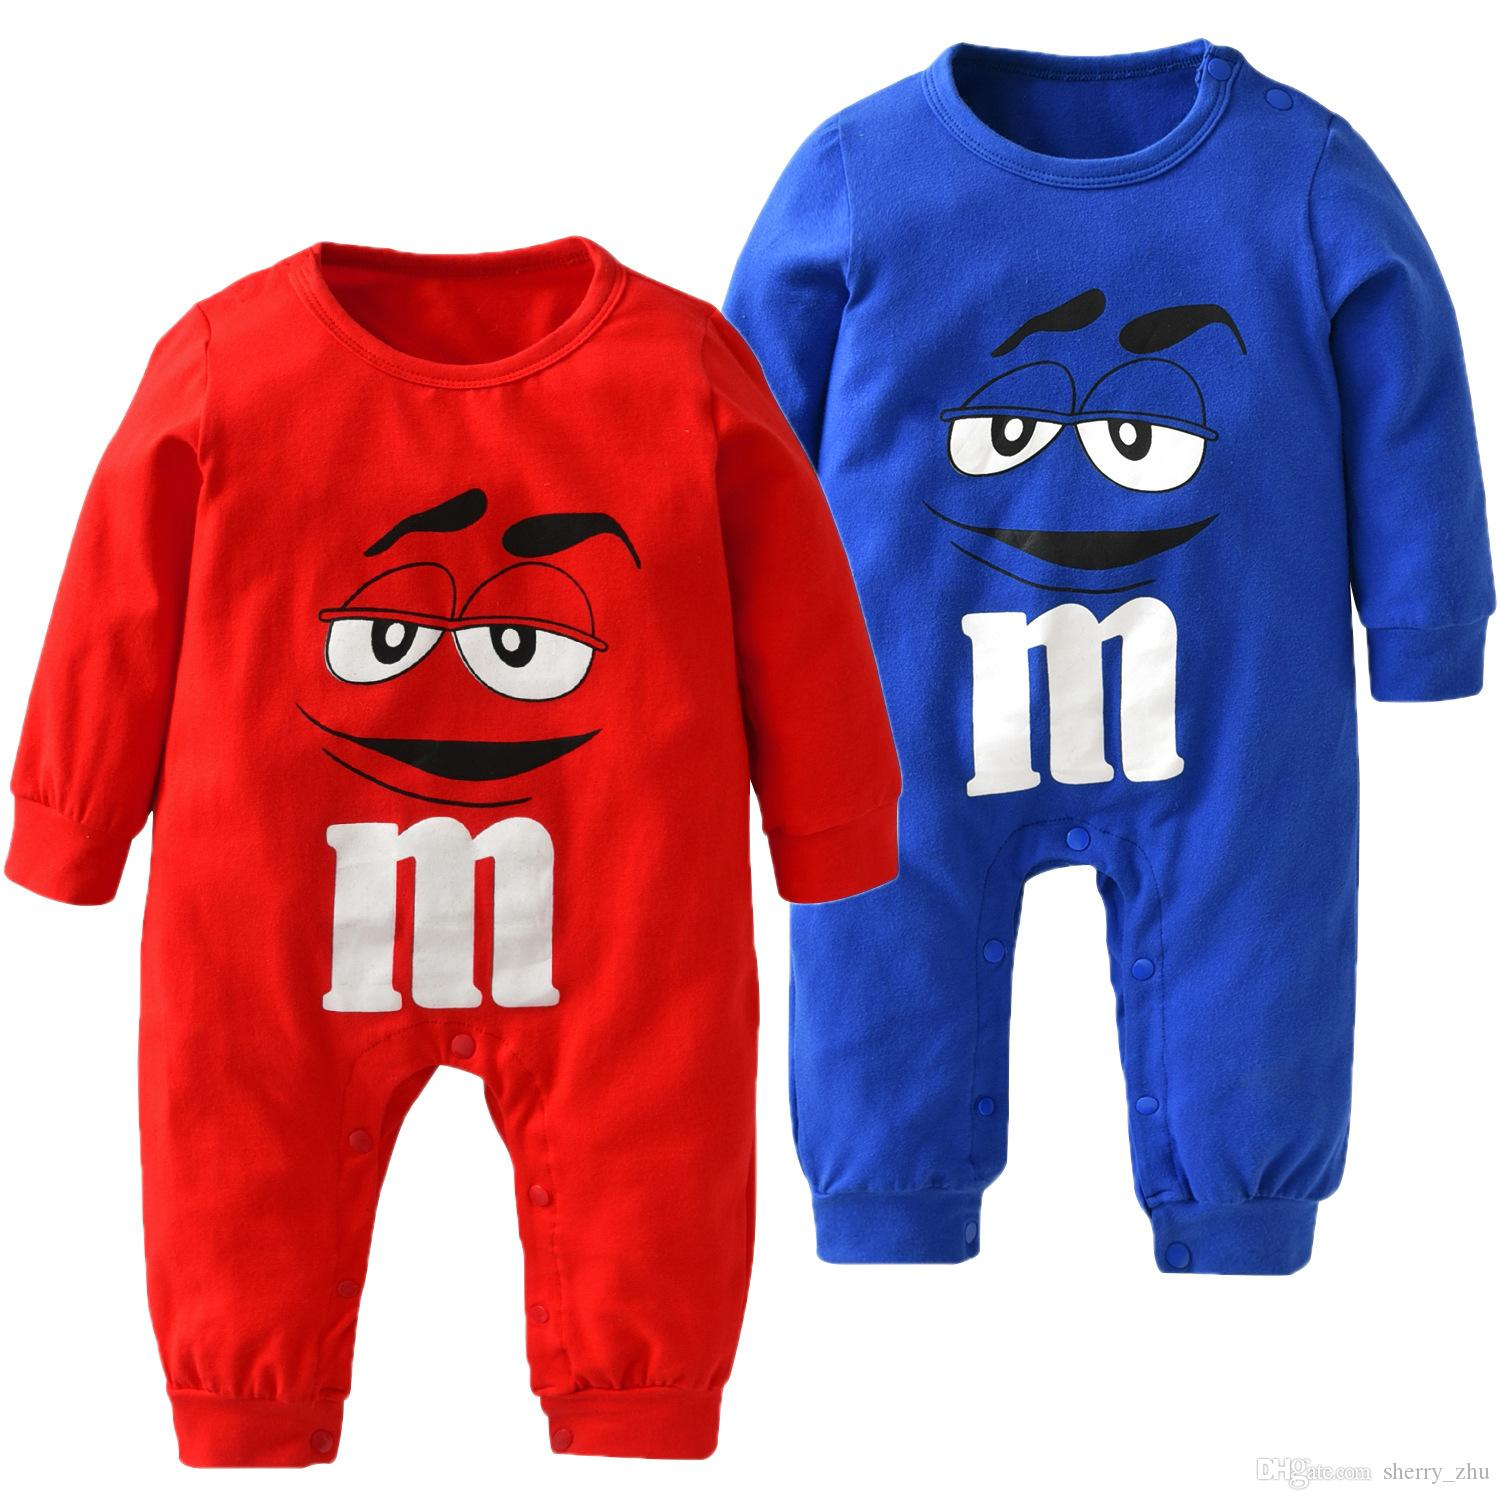 Newborn Baby Boys Girls Clothes Cartoon M beans 100% Cotton Long Sleeve Jumpsuits Toddler Casual Baby Clothing Sets